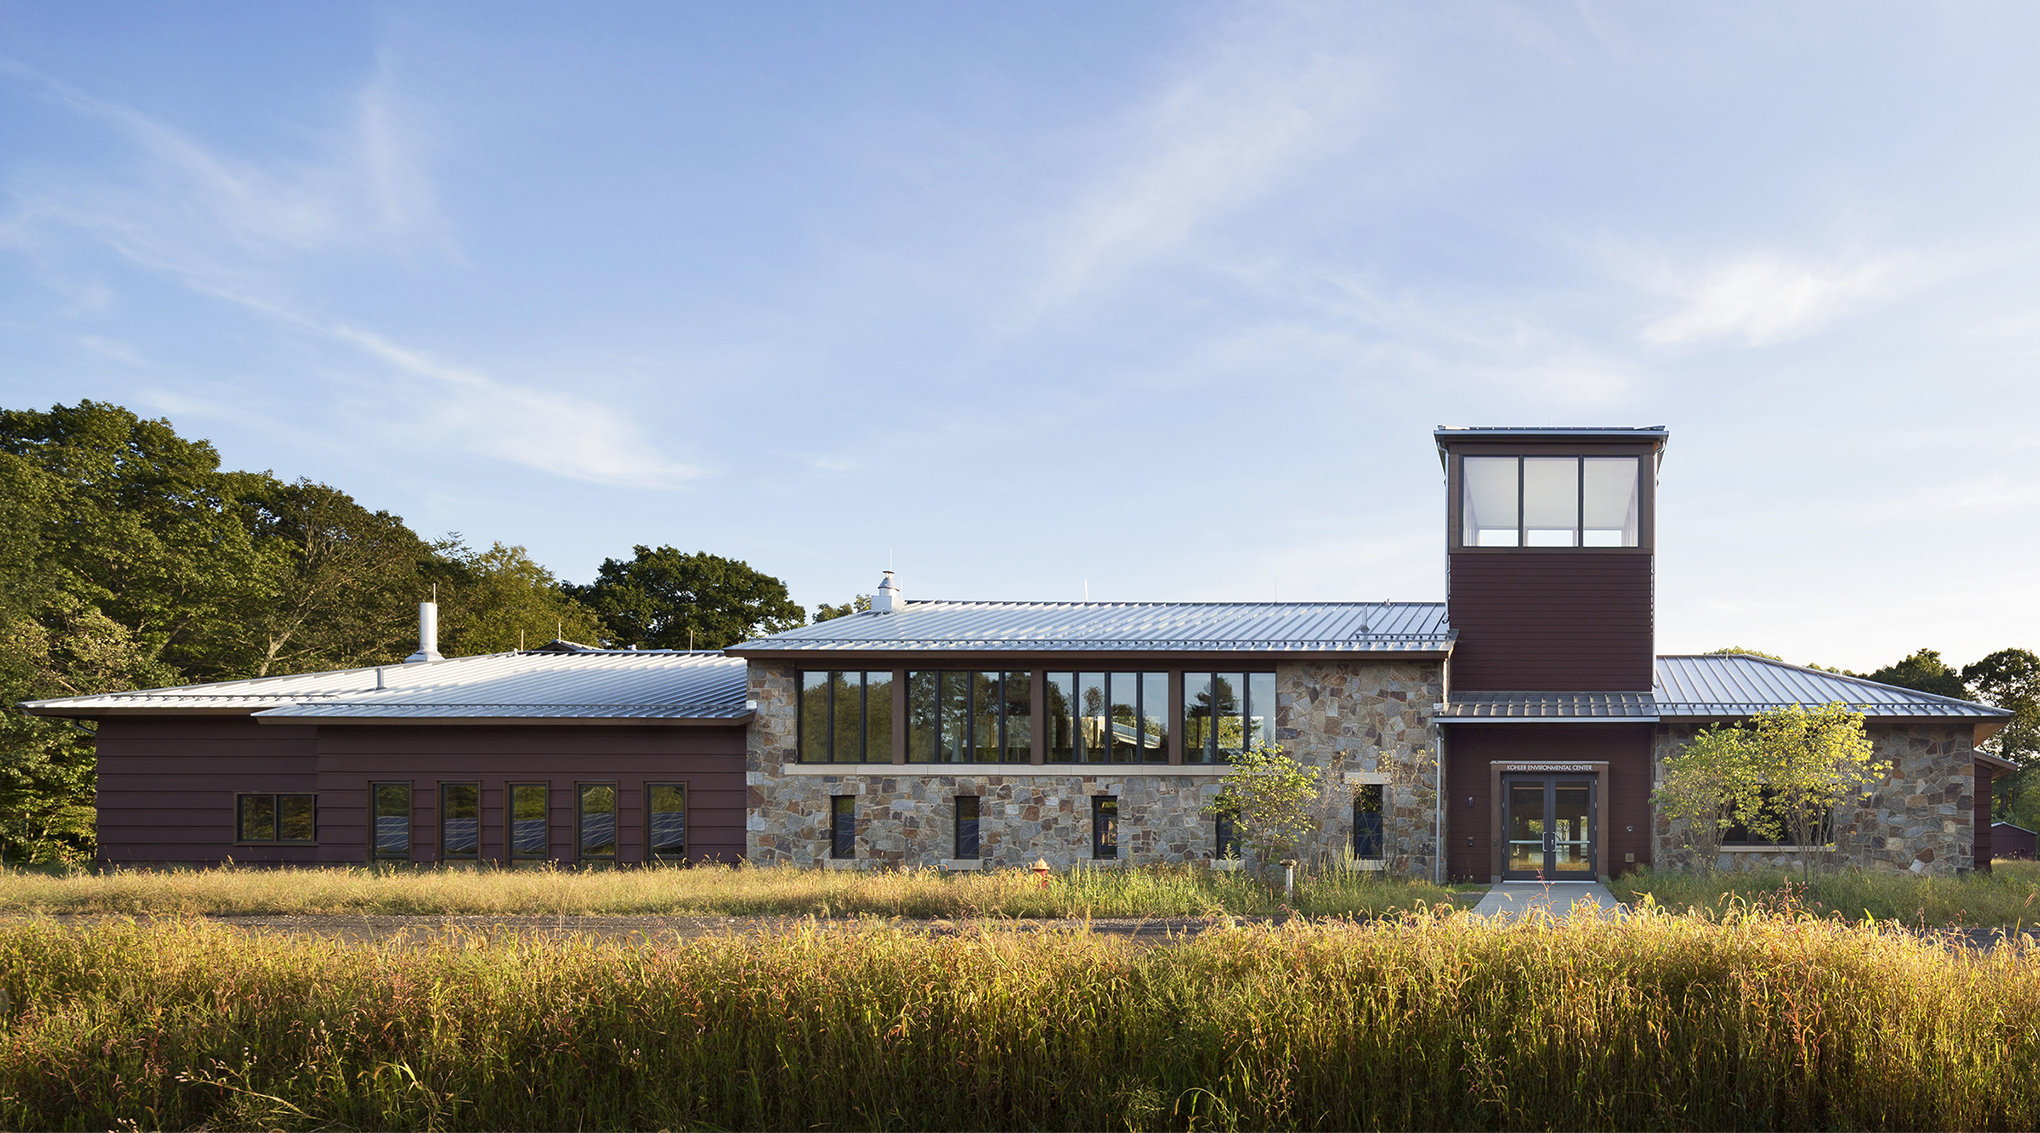 <p>West facade of the Kohler Environmental Center, viewed from campus. Photograph Peter Aaron / OTTO, 2012.</p>